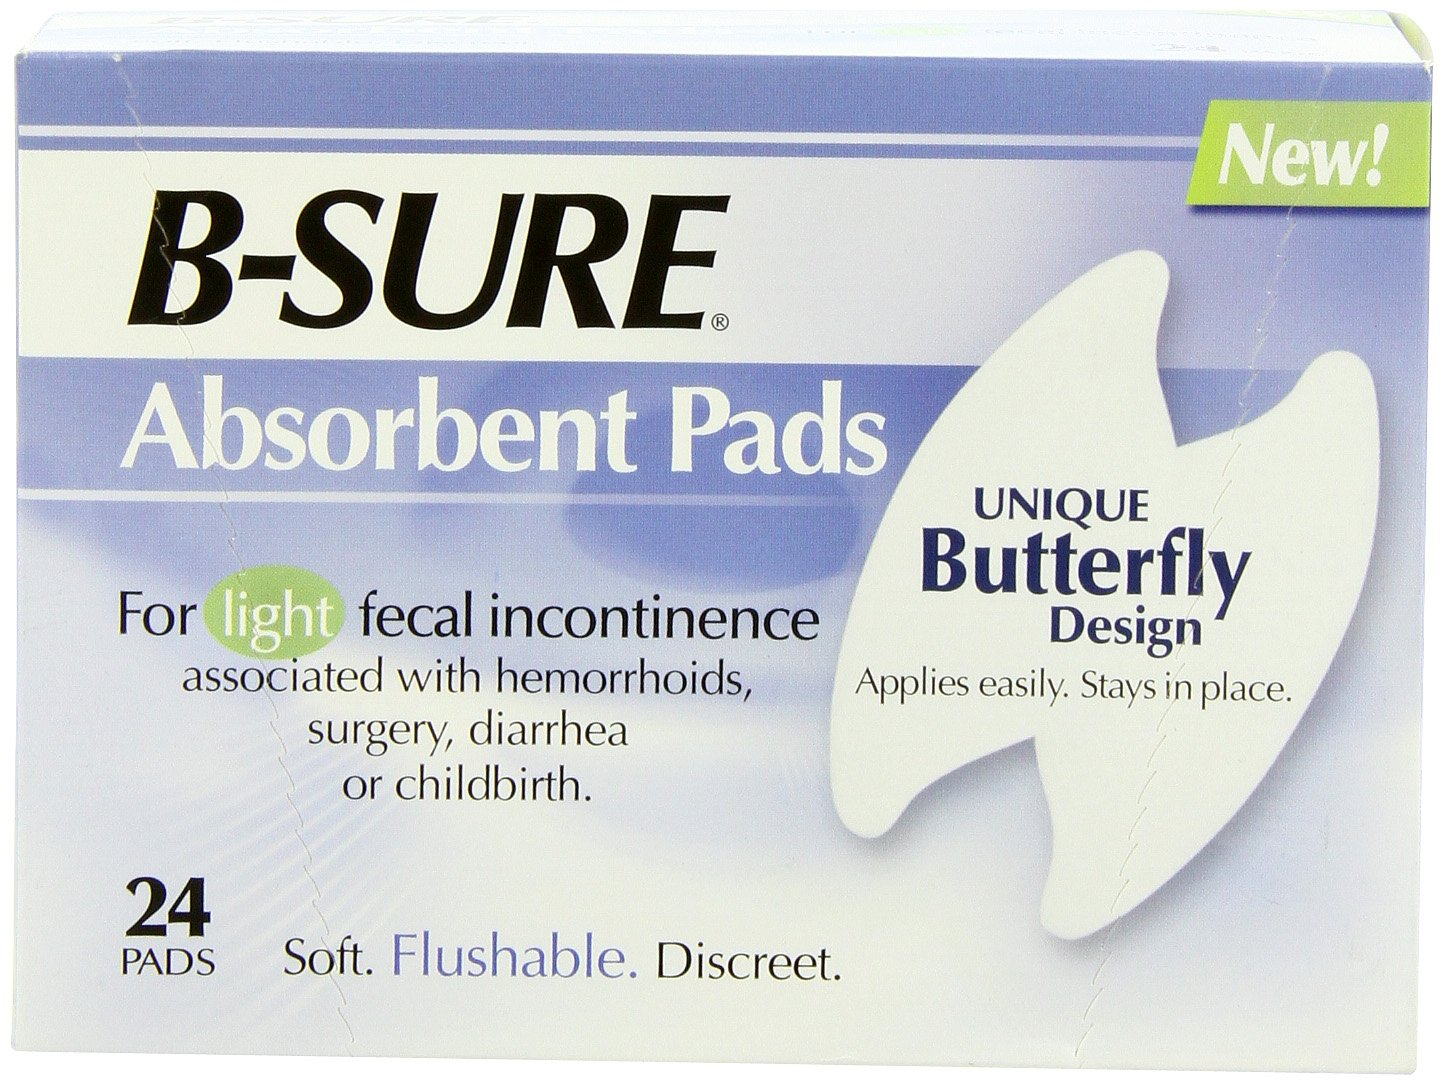 B-Sure Anal Leakage Pads, Box/24 Pads